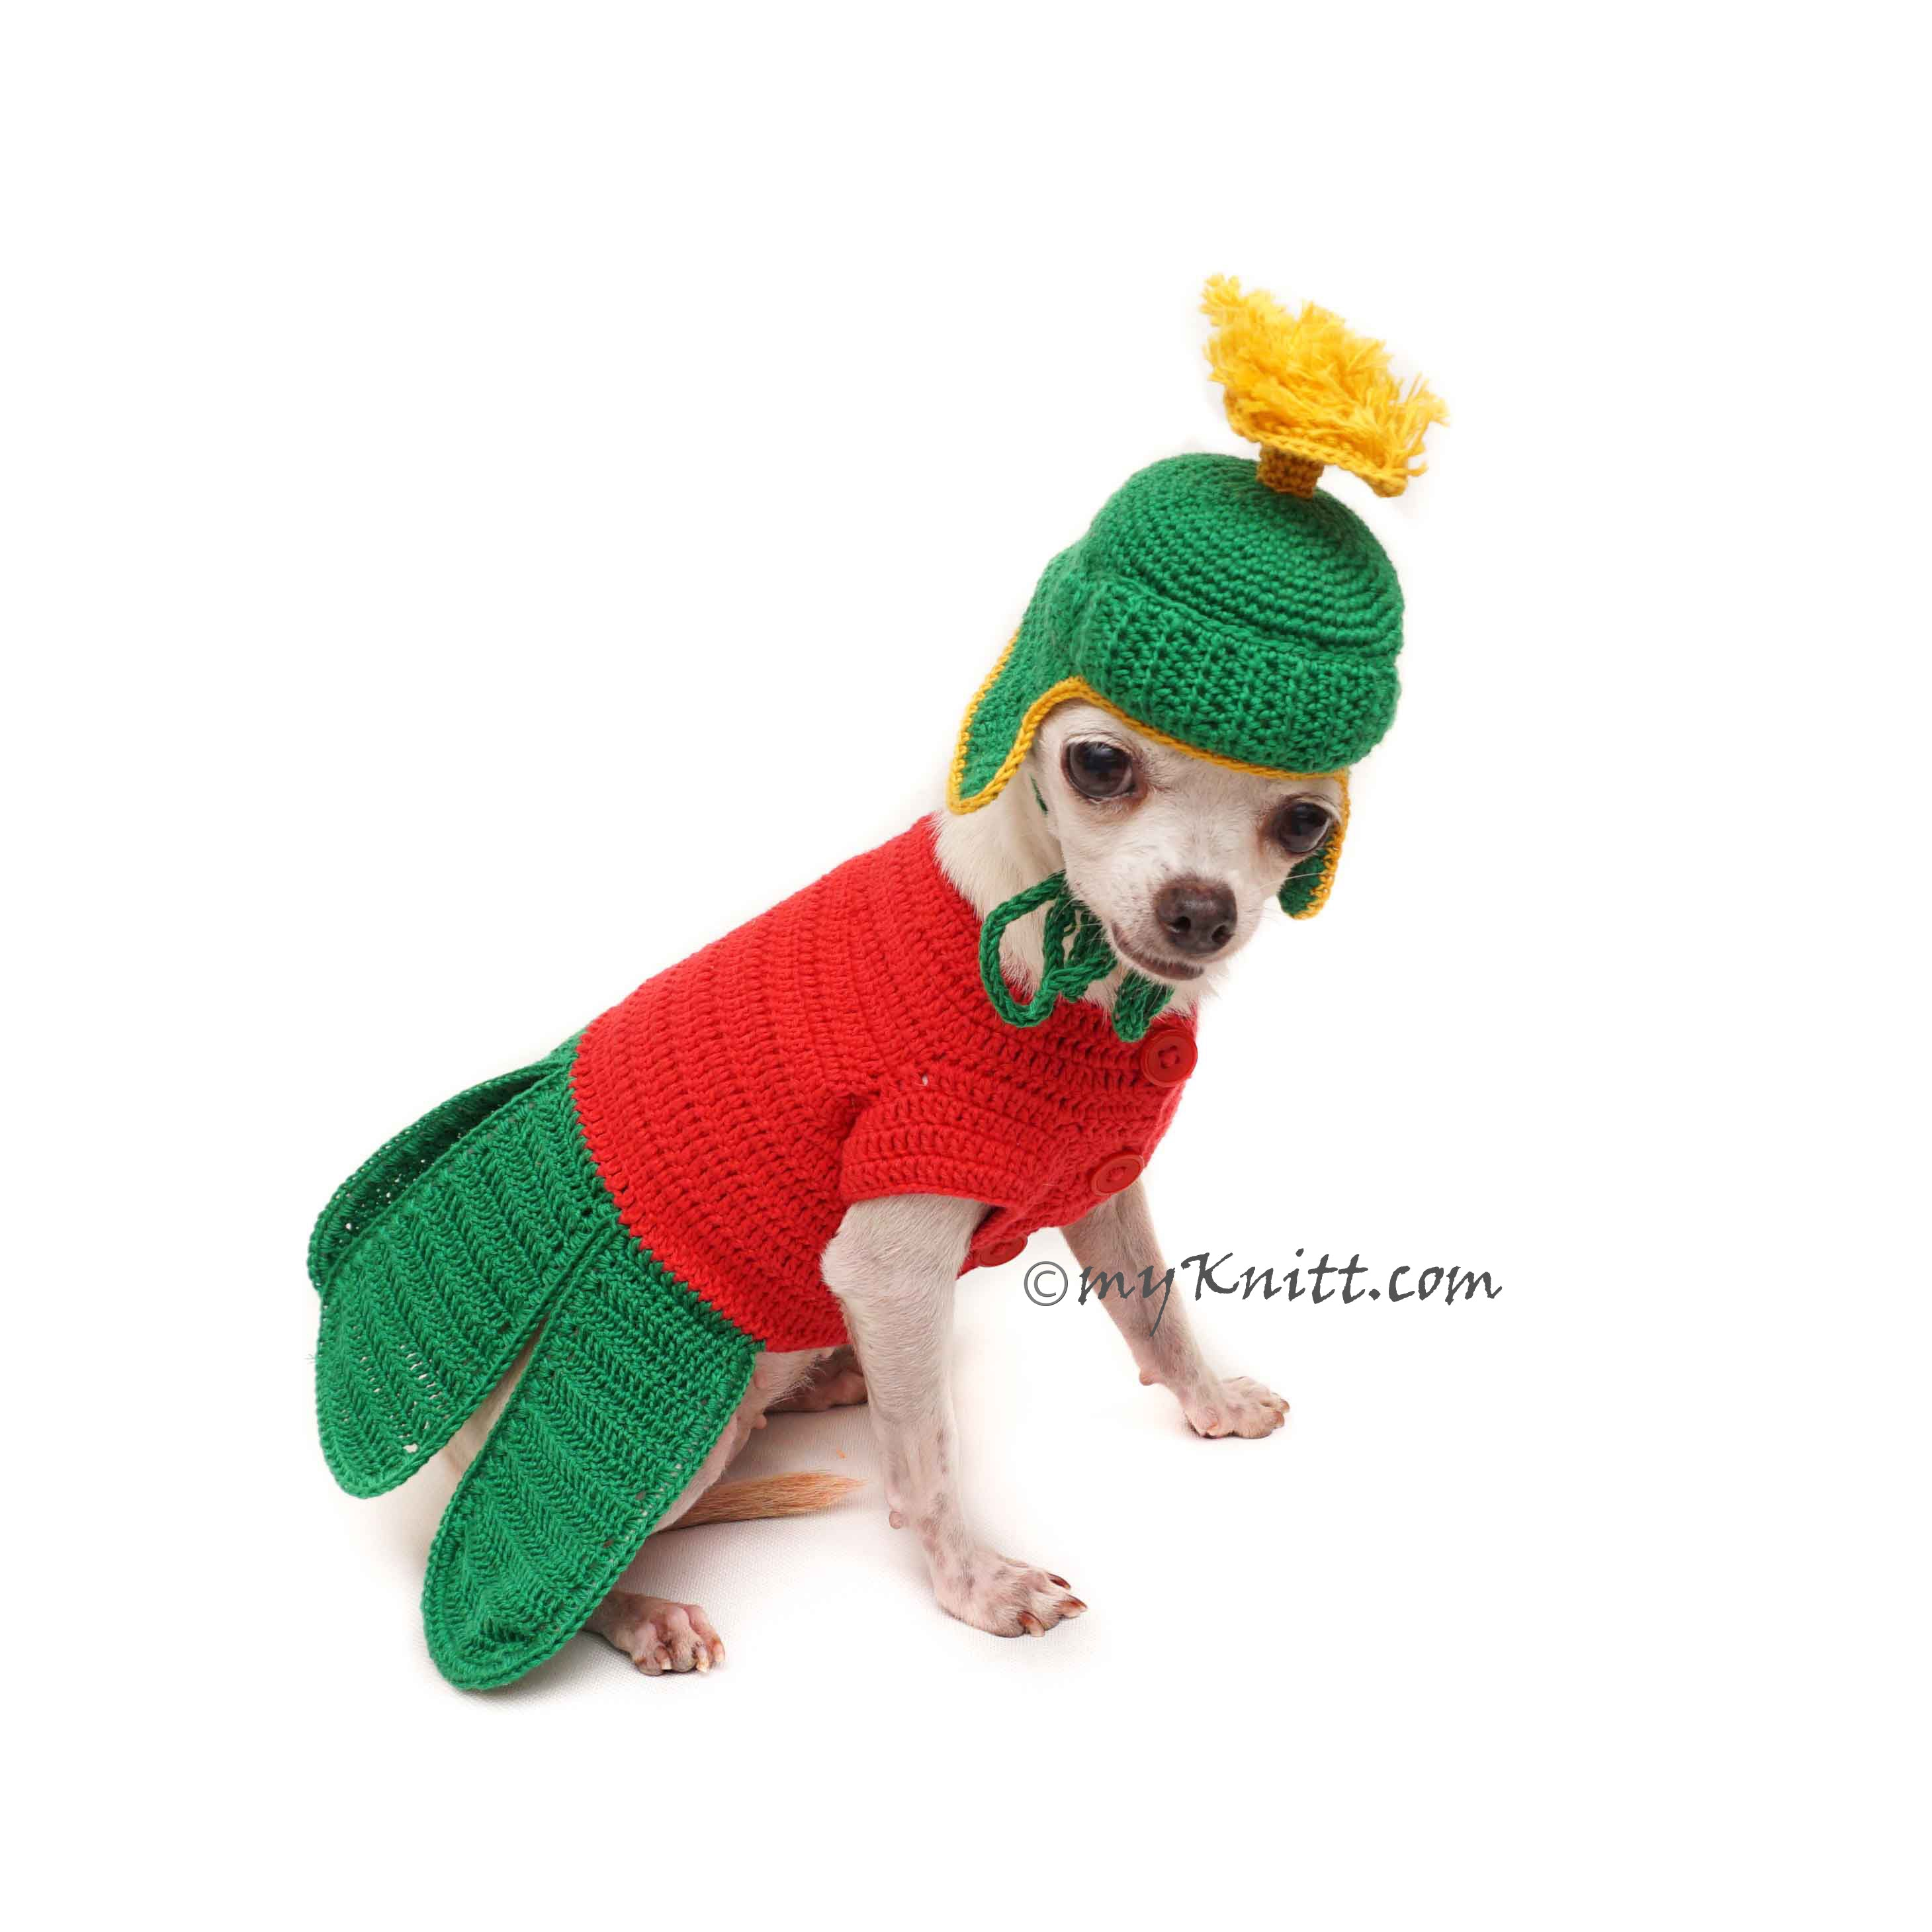 Marvin The Martian Costume for Pets, Crochet Pet Costume for Photo Props DF170 Myknitt